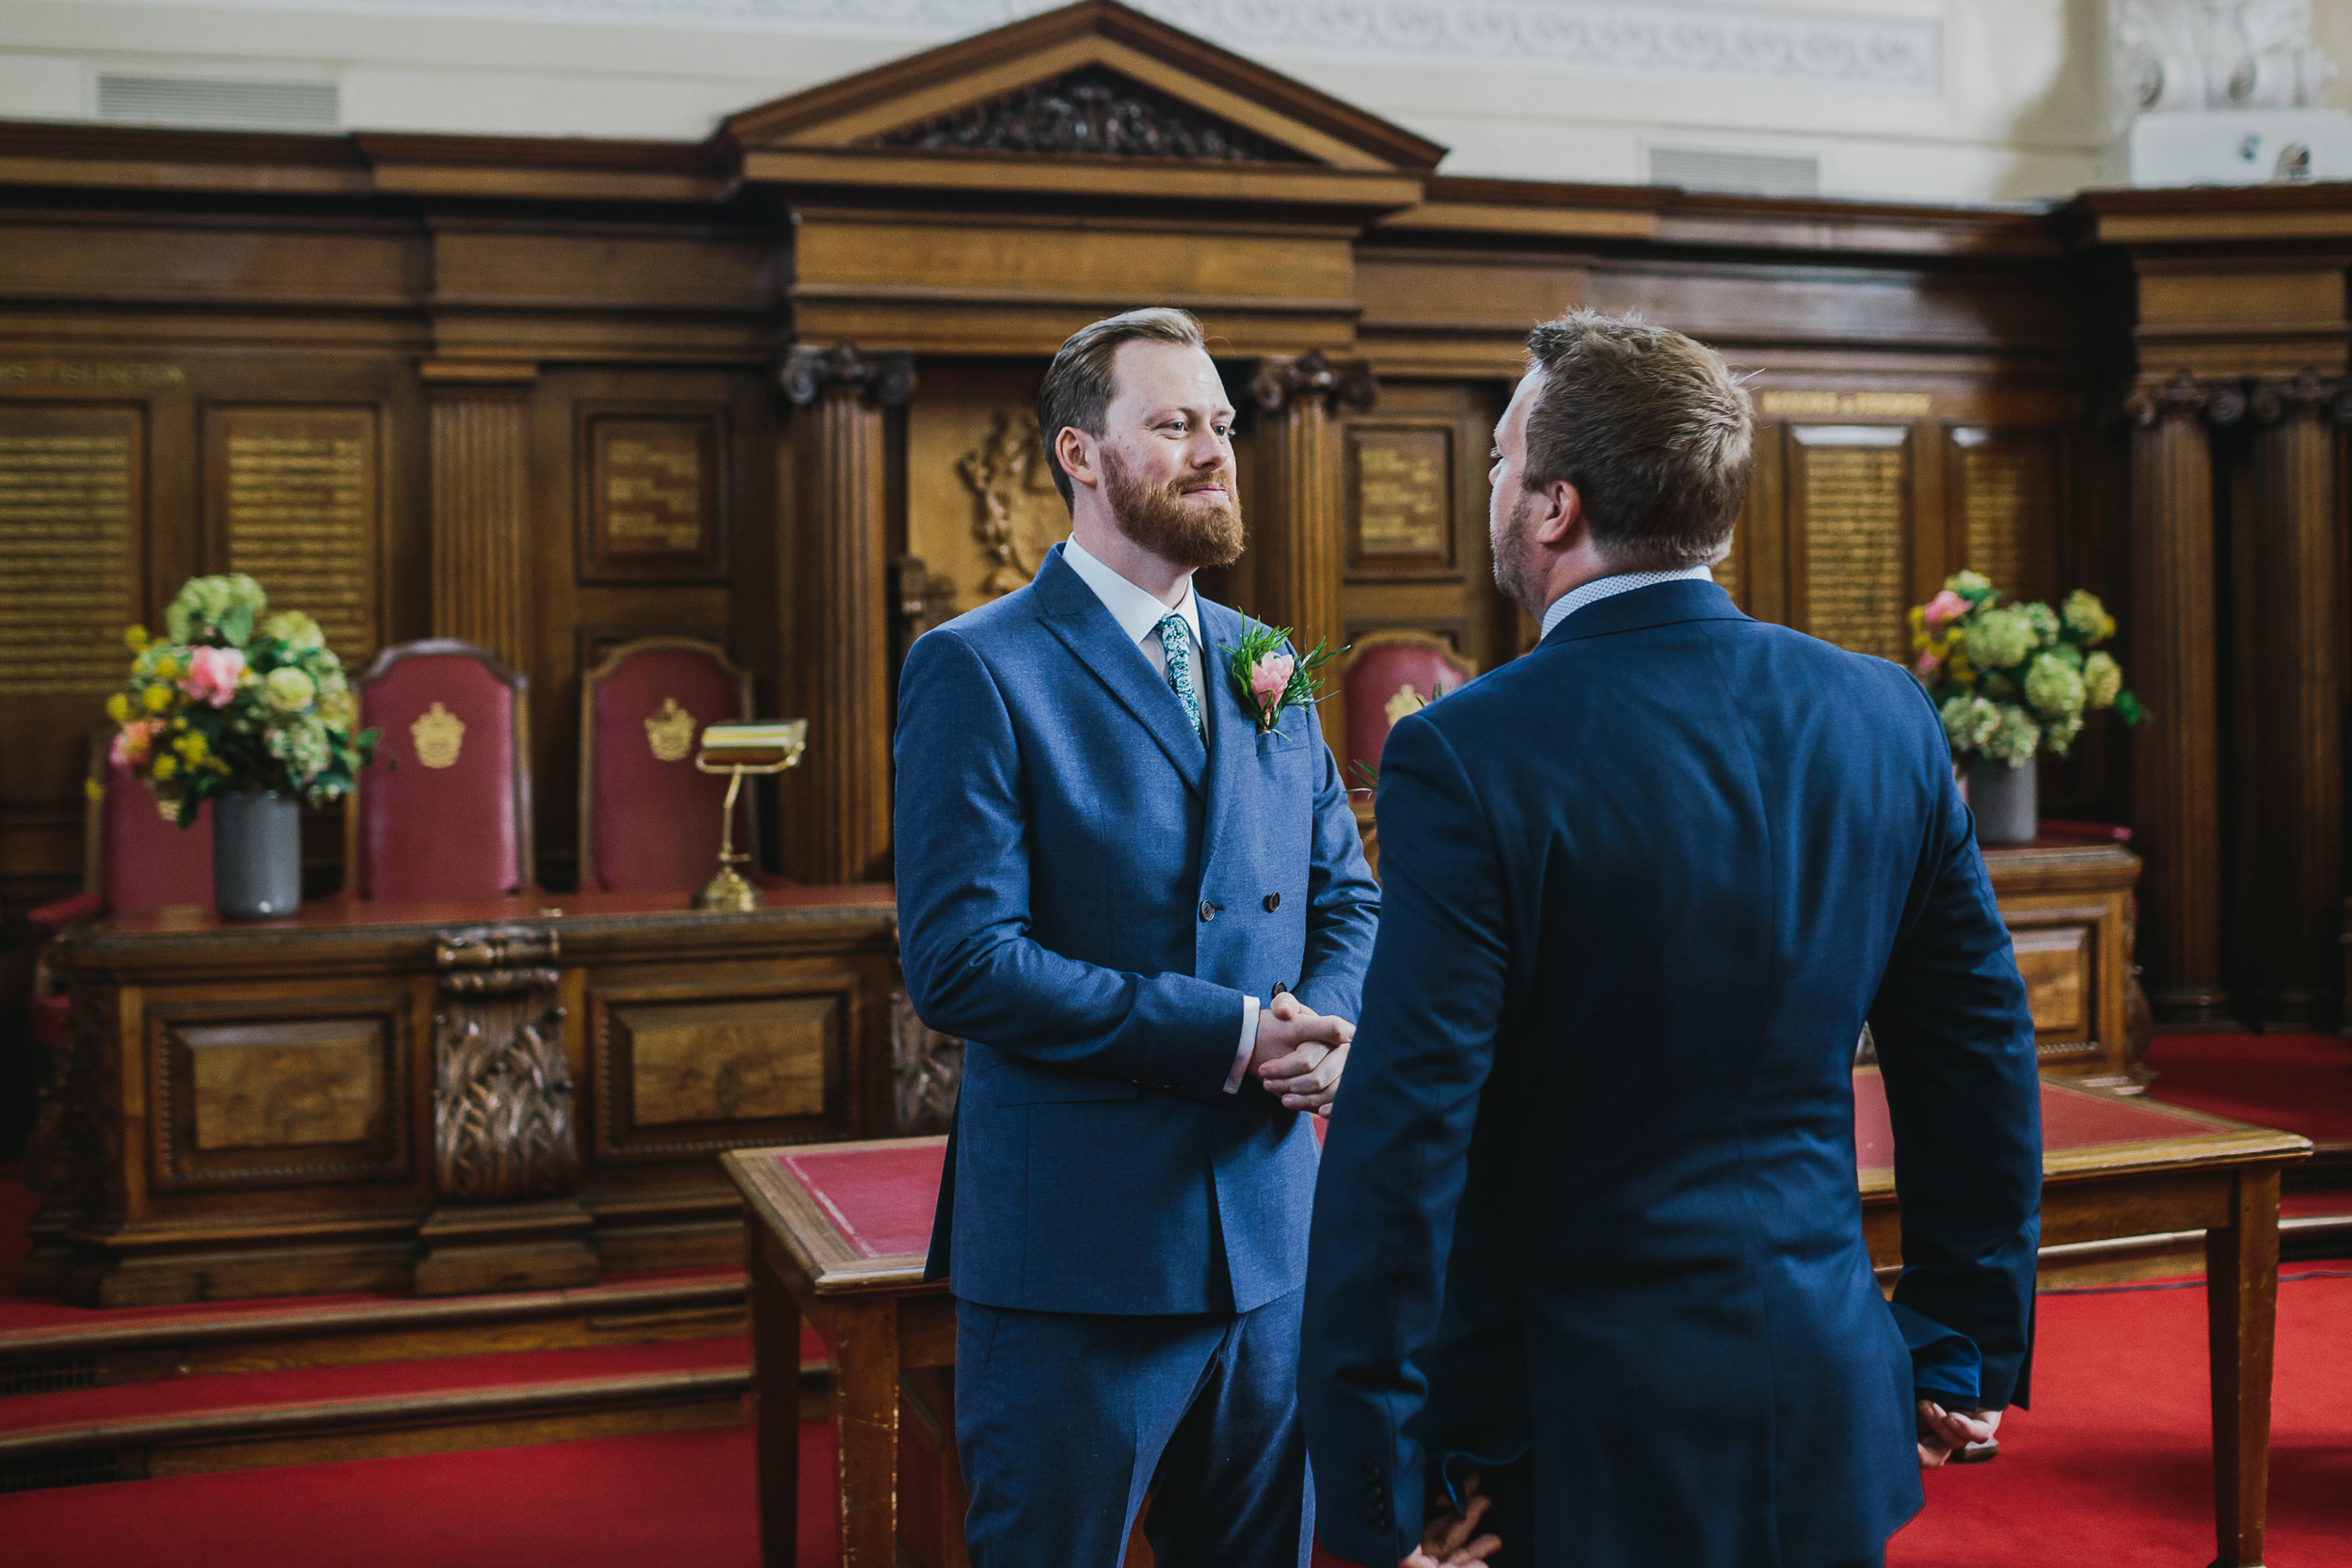 Islington_Town_Hall_Wedding_18.JPG